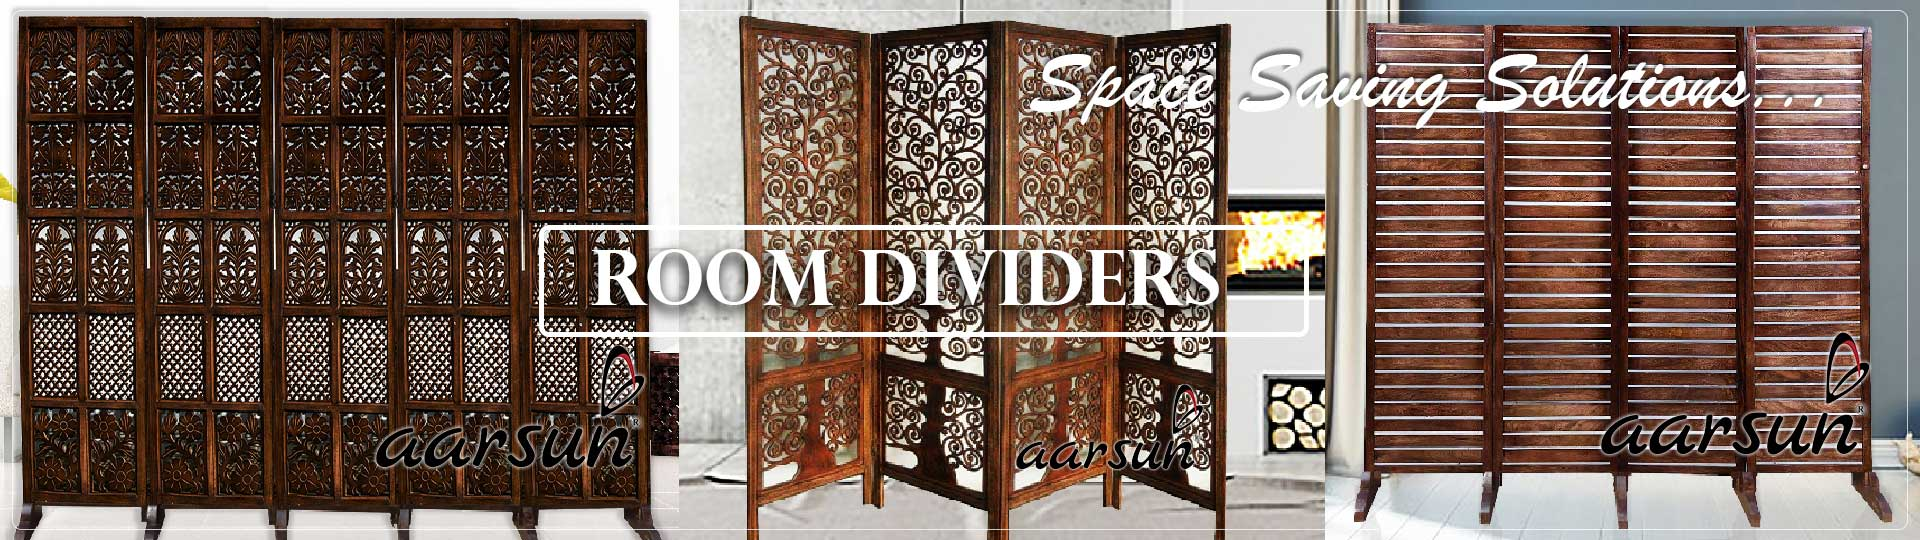 Aarsun Room Dividers Partition Screens